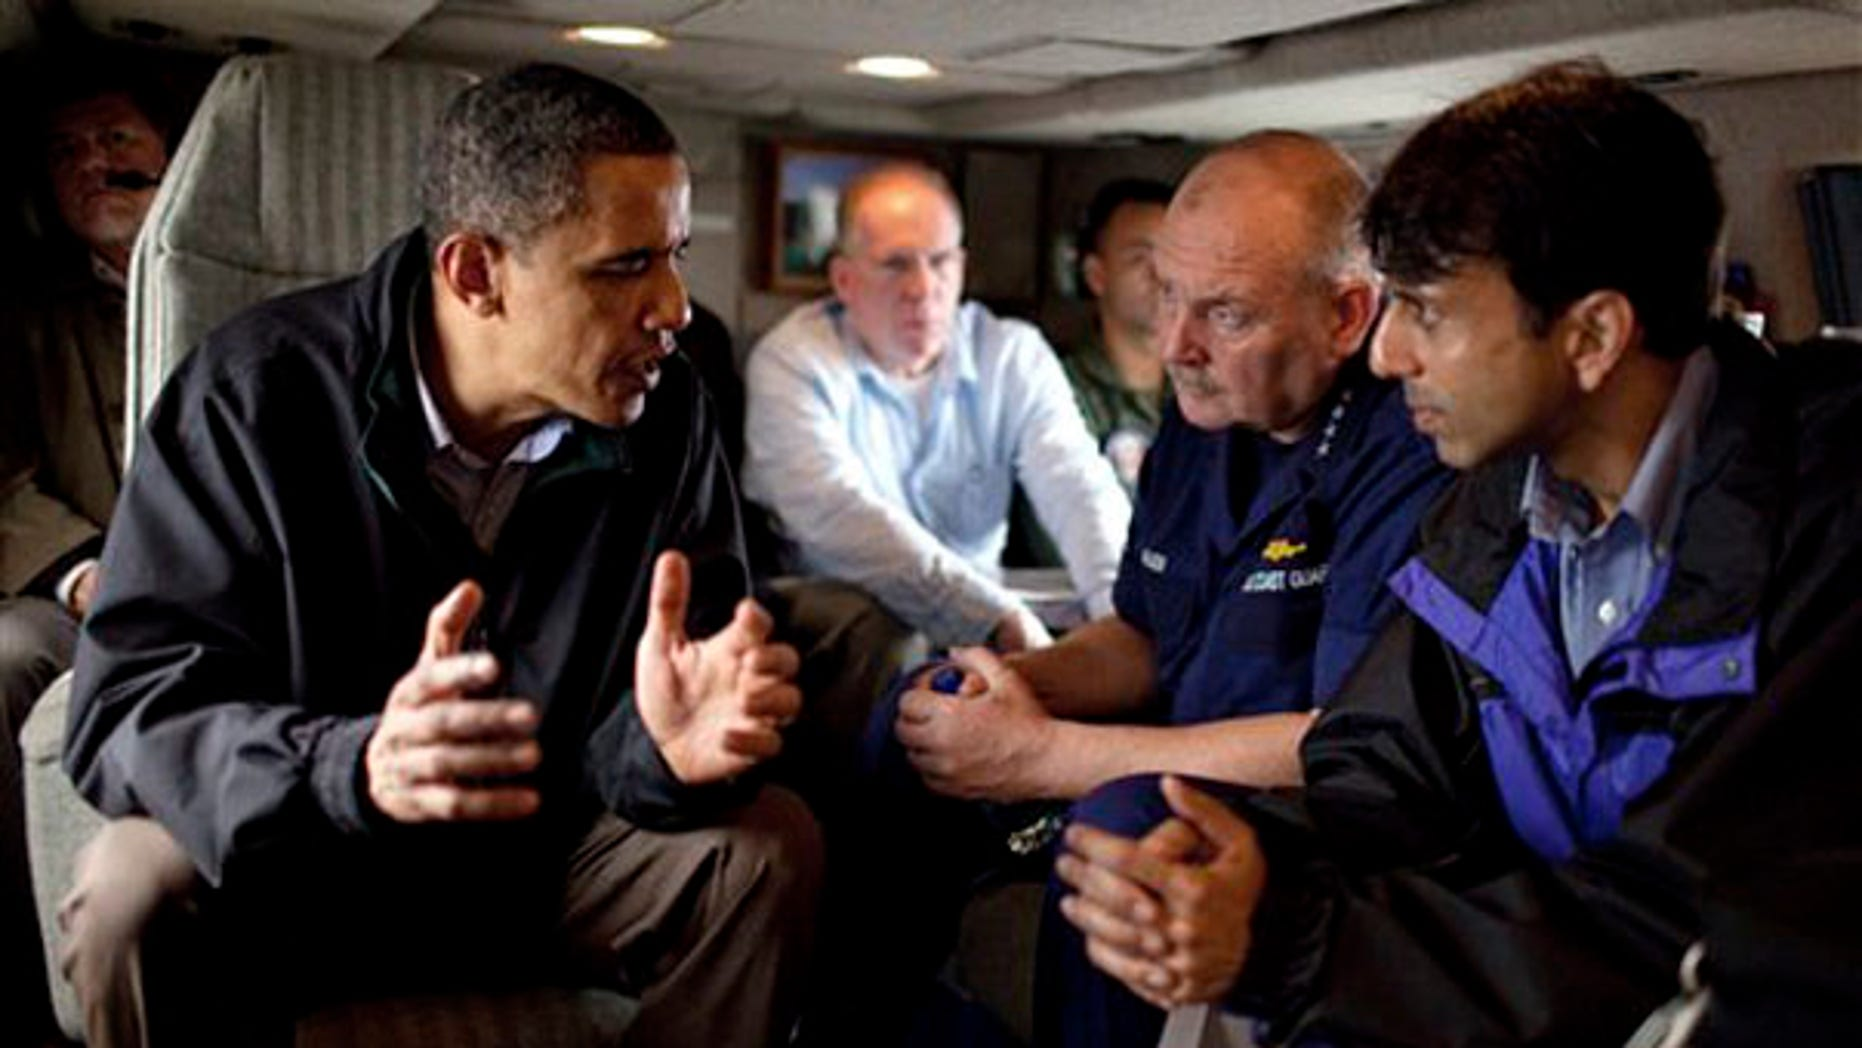 In this photo released by the White House, President Obama talks with U.S. Coast Guard Commandant Adm. Thad Allen, second right, and Louisiana Gov. Bobby Jindal aboard Marine One as they fly along the coastline from Venice, La., to New Orleans on May 2. (AP Photo)